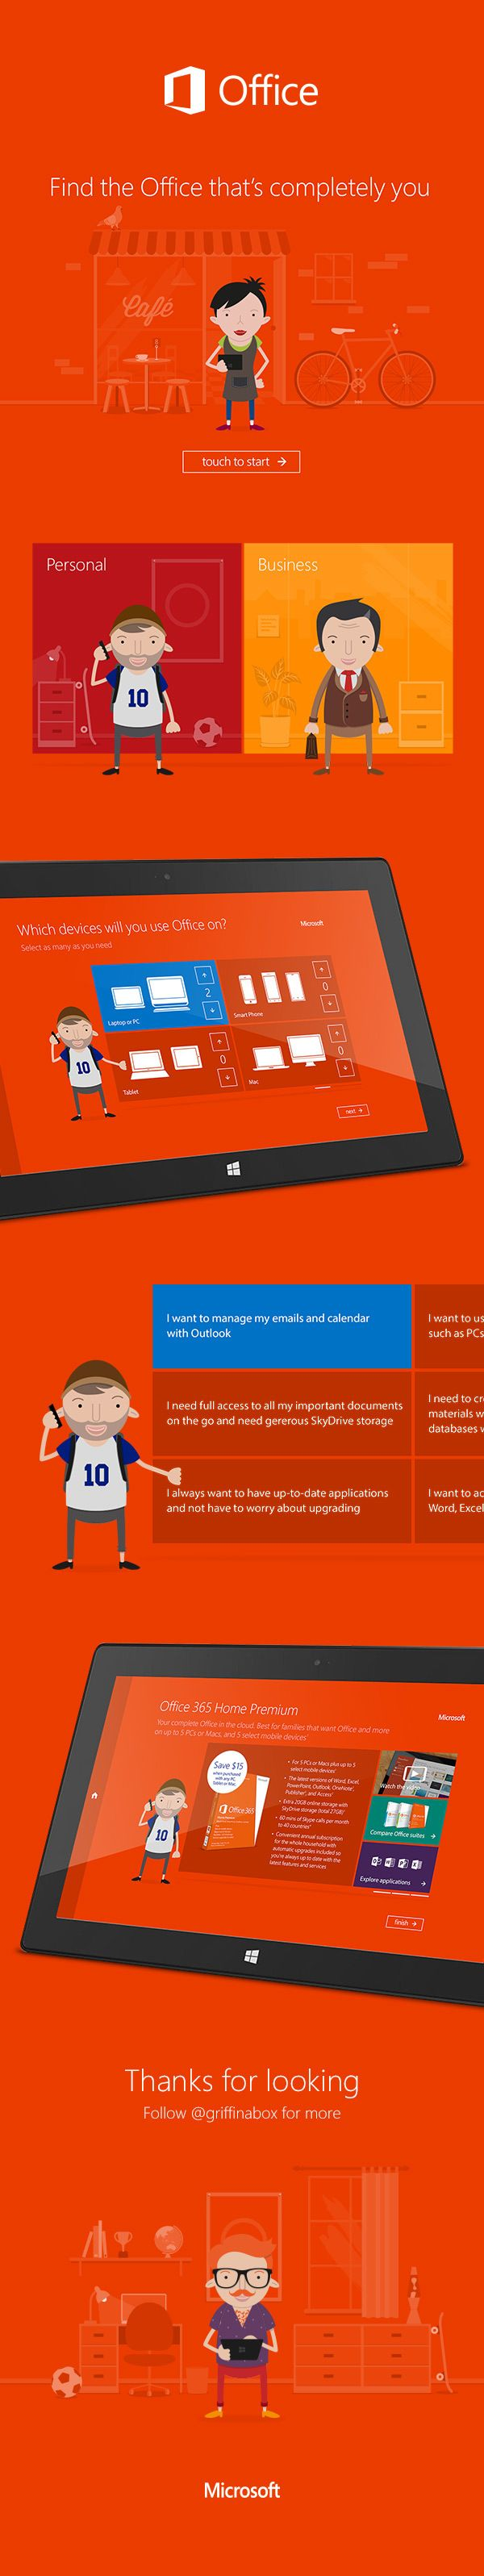 Microsoft Office - Completely You by James Griffiths, via Behance